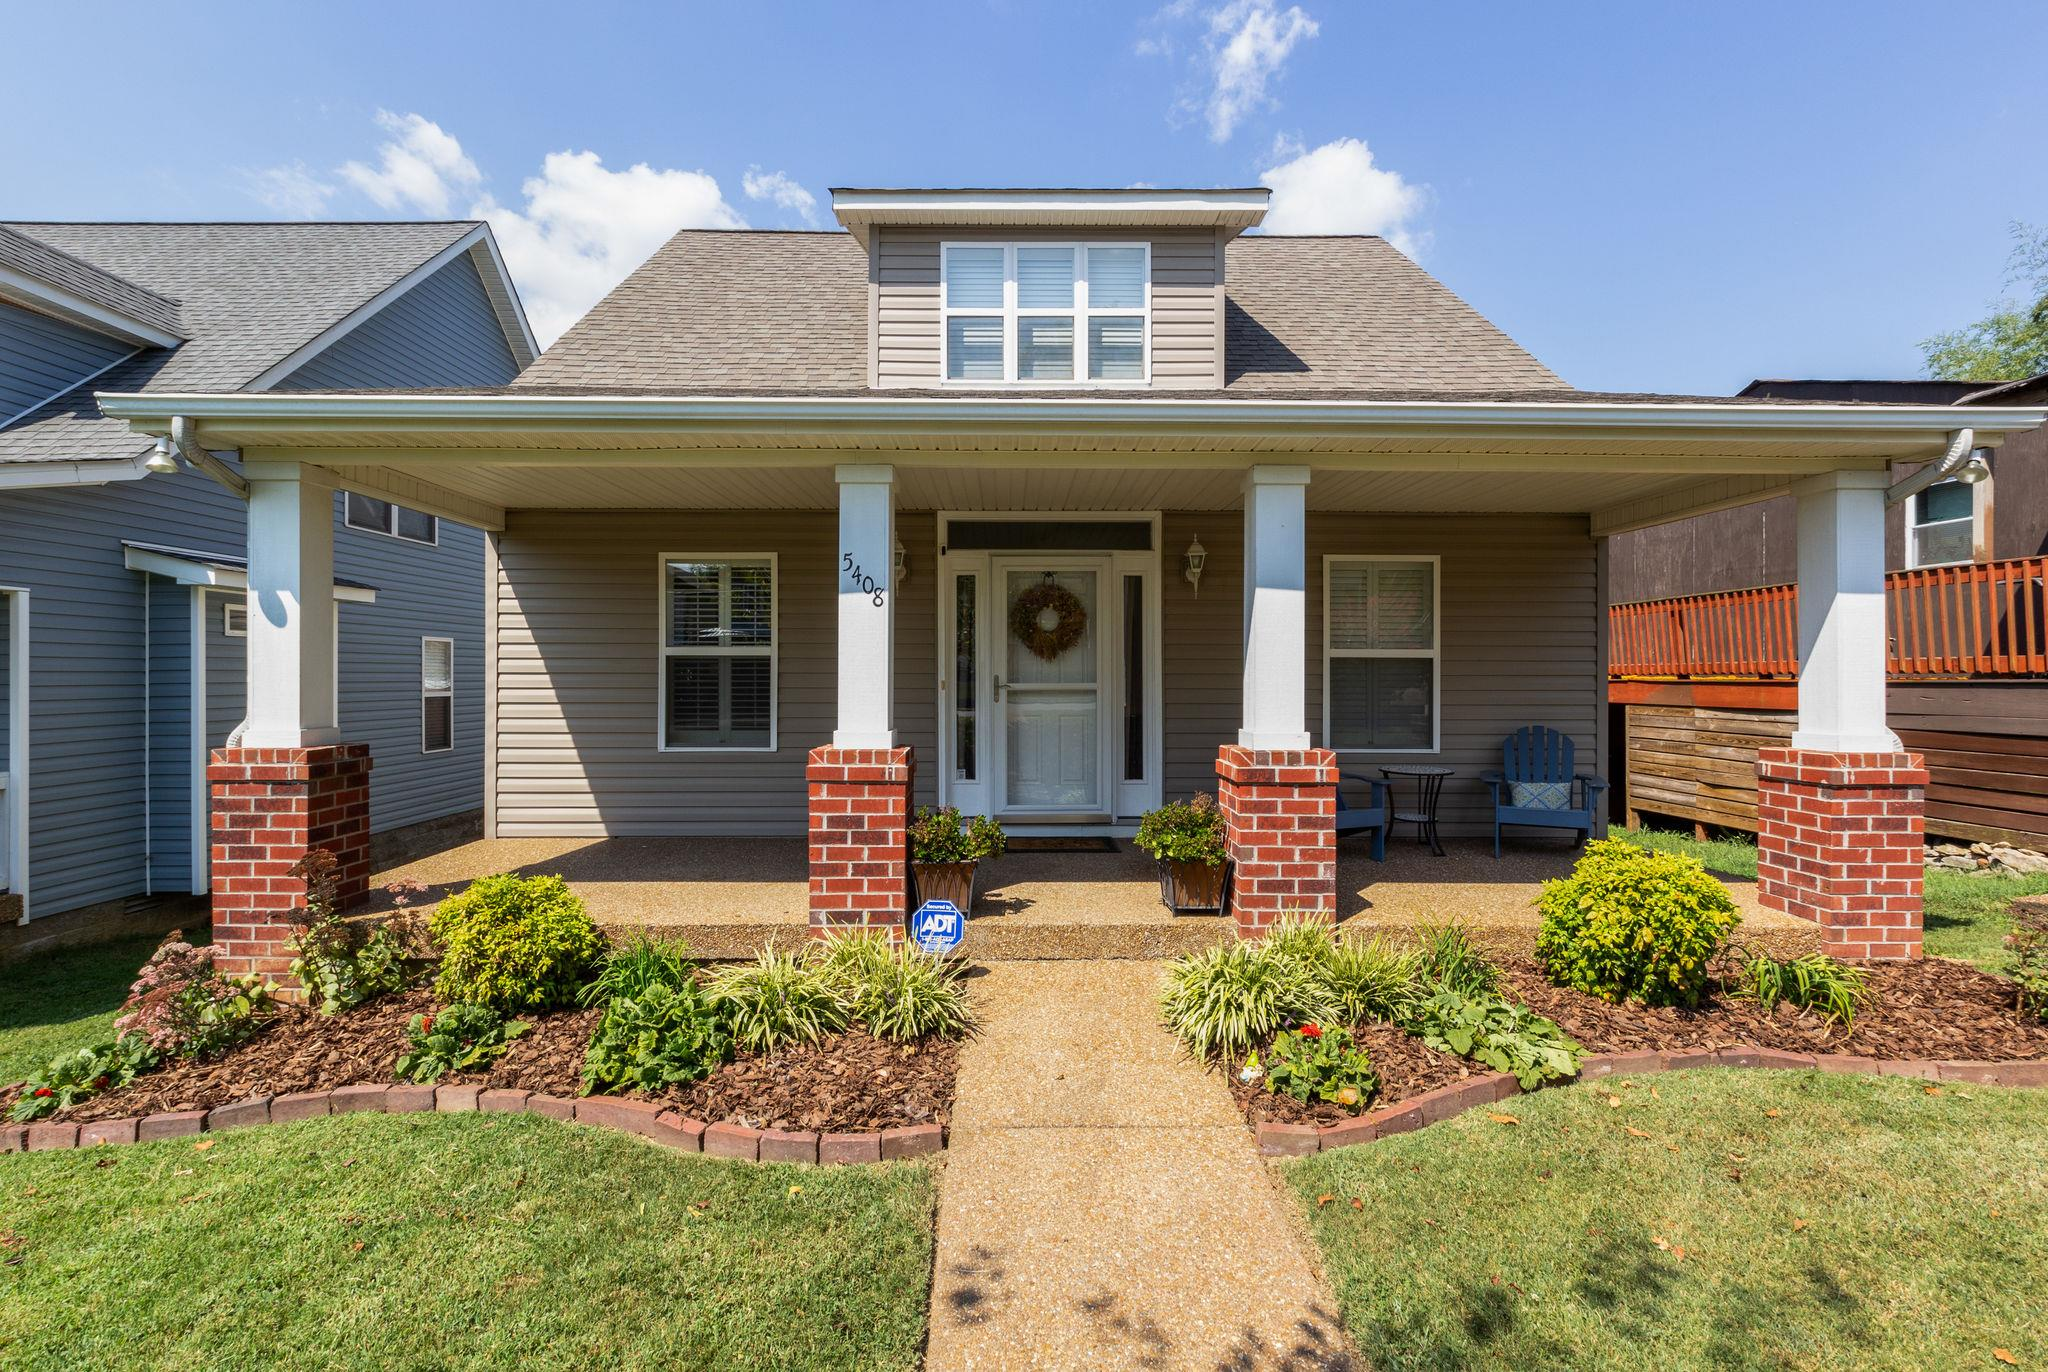 5408 Michigan Ave, Nashville, TN 37209 - Nashville, TN real estate listing